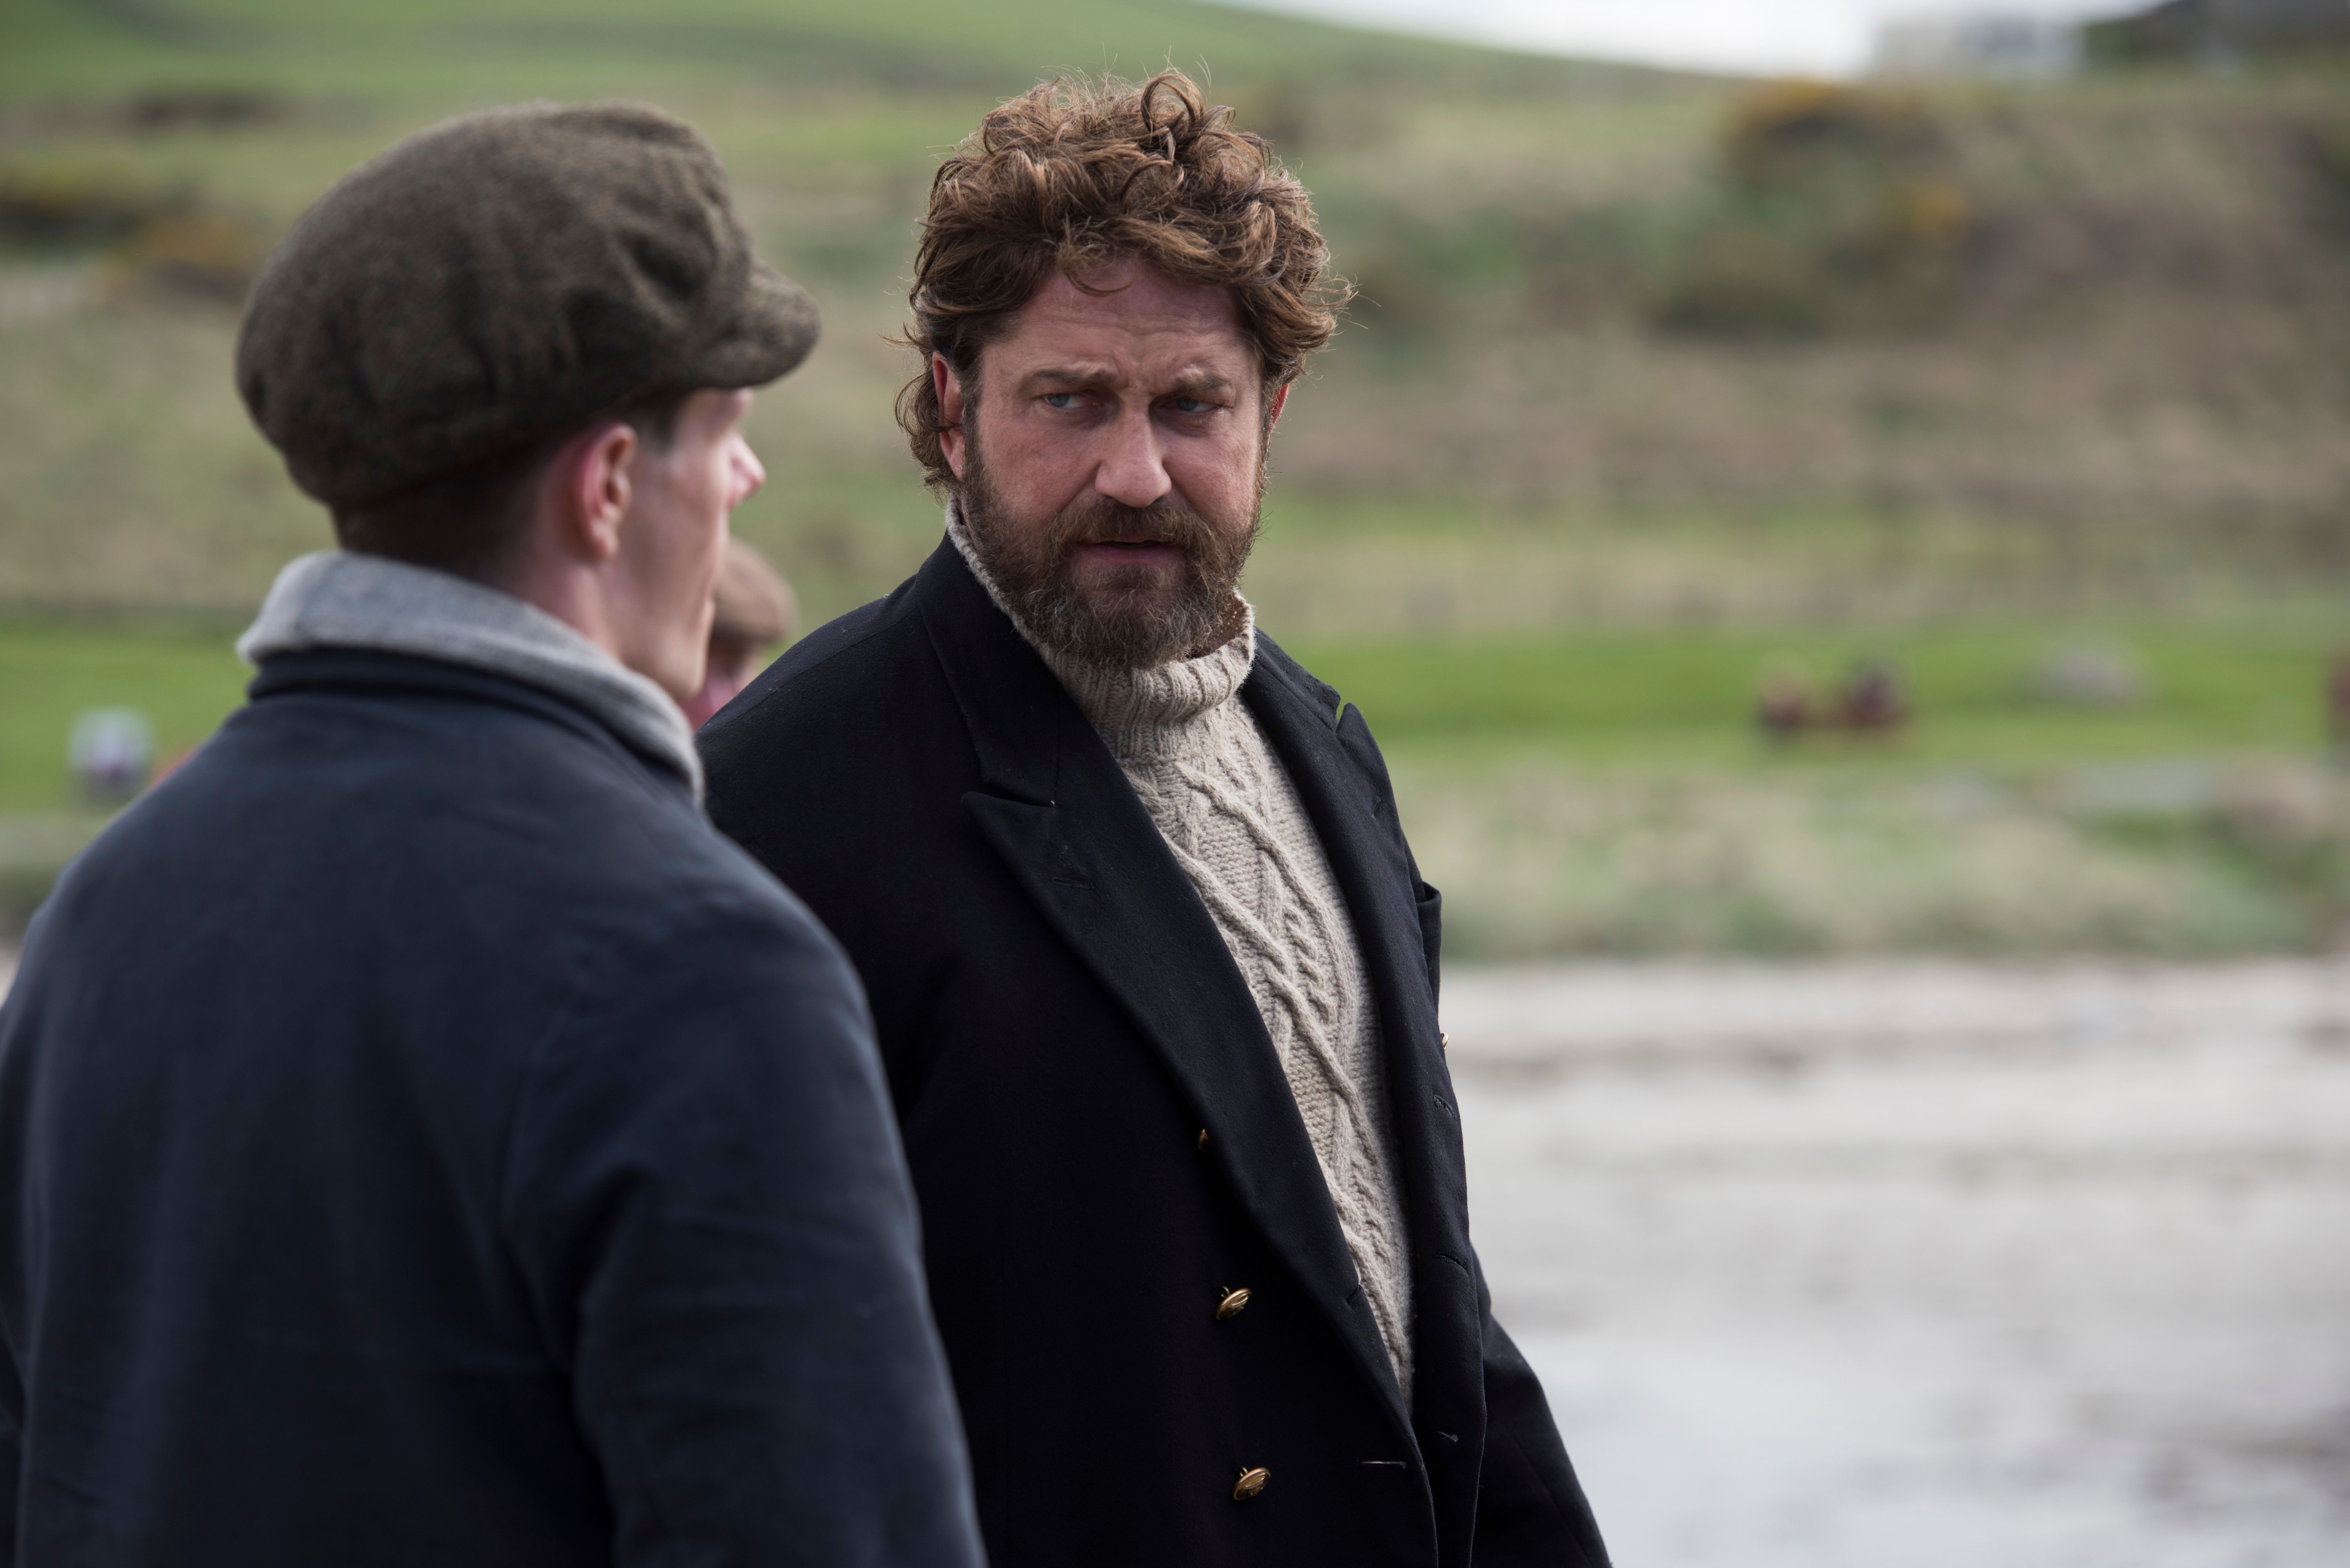 Whose House Our House >> The Vanishing Clip Features Gerard Butler as an Angry Lighthouse Keeper | Collider